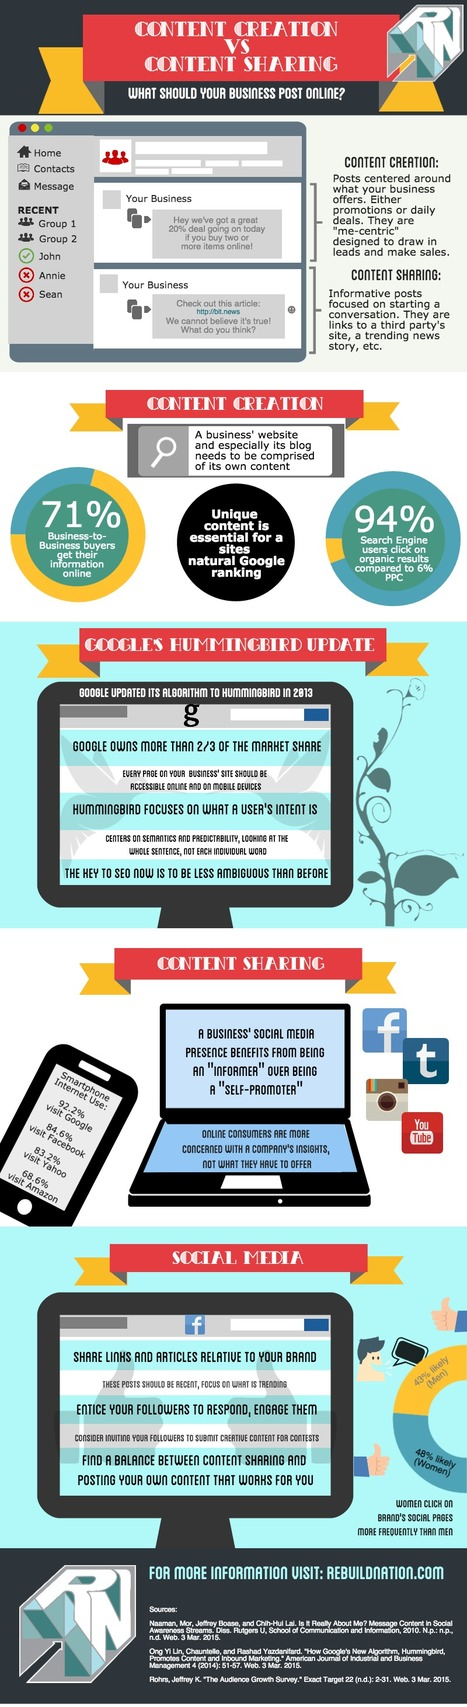 Should you Use Content Creation or Content Sharing? [Infographic] | Information Technology & Social Media News | Scoop.it